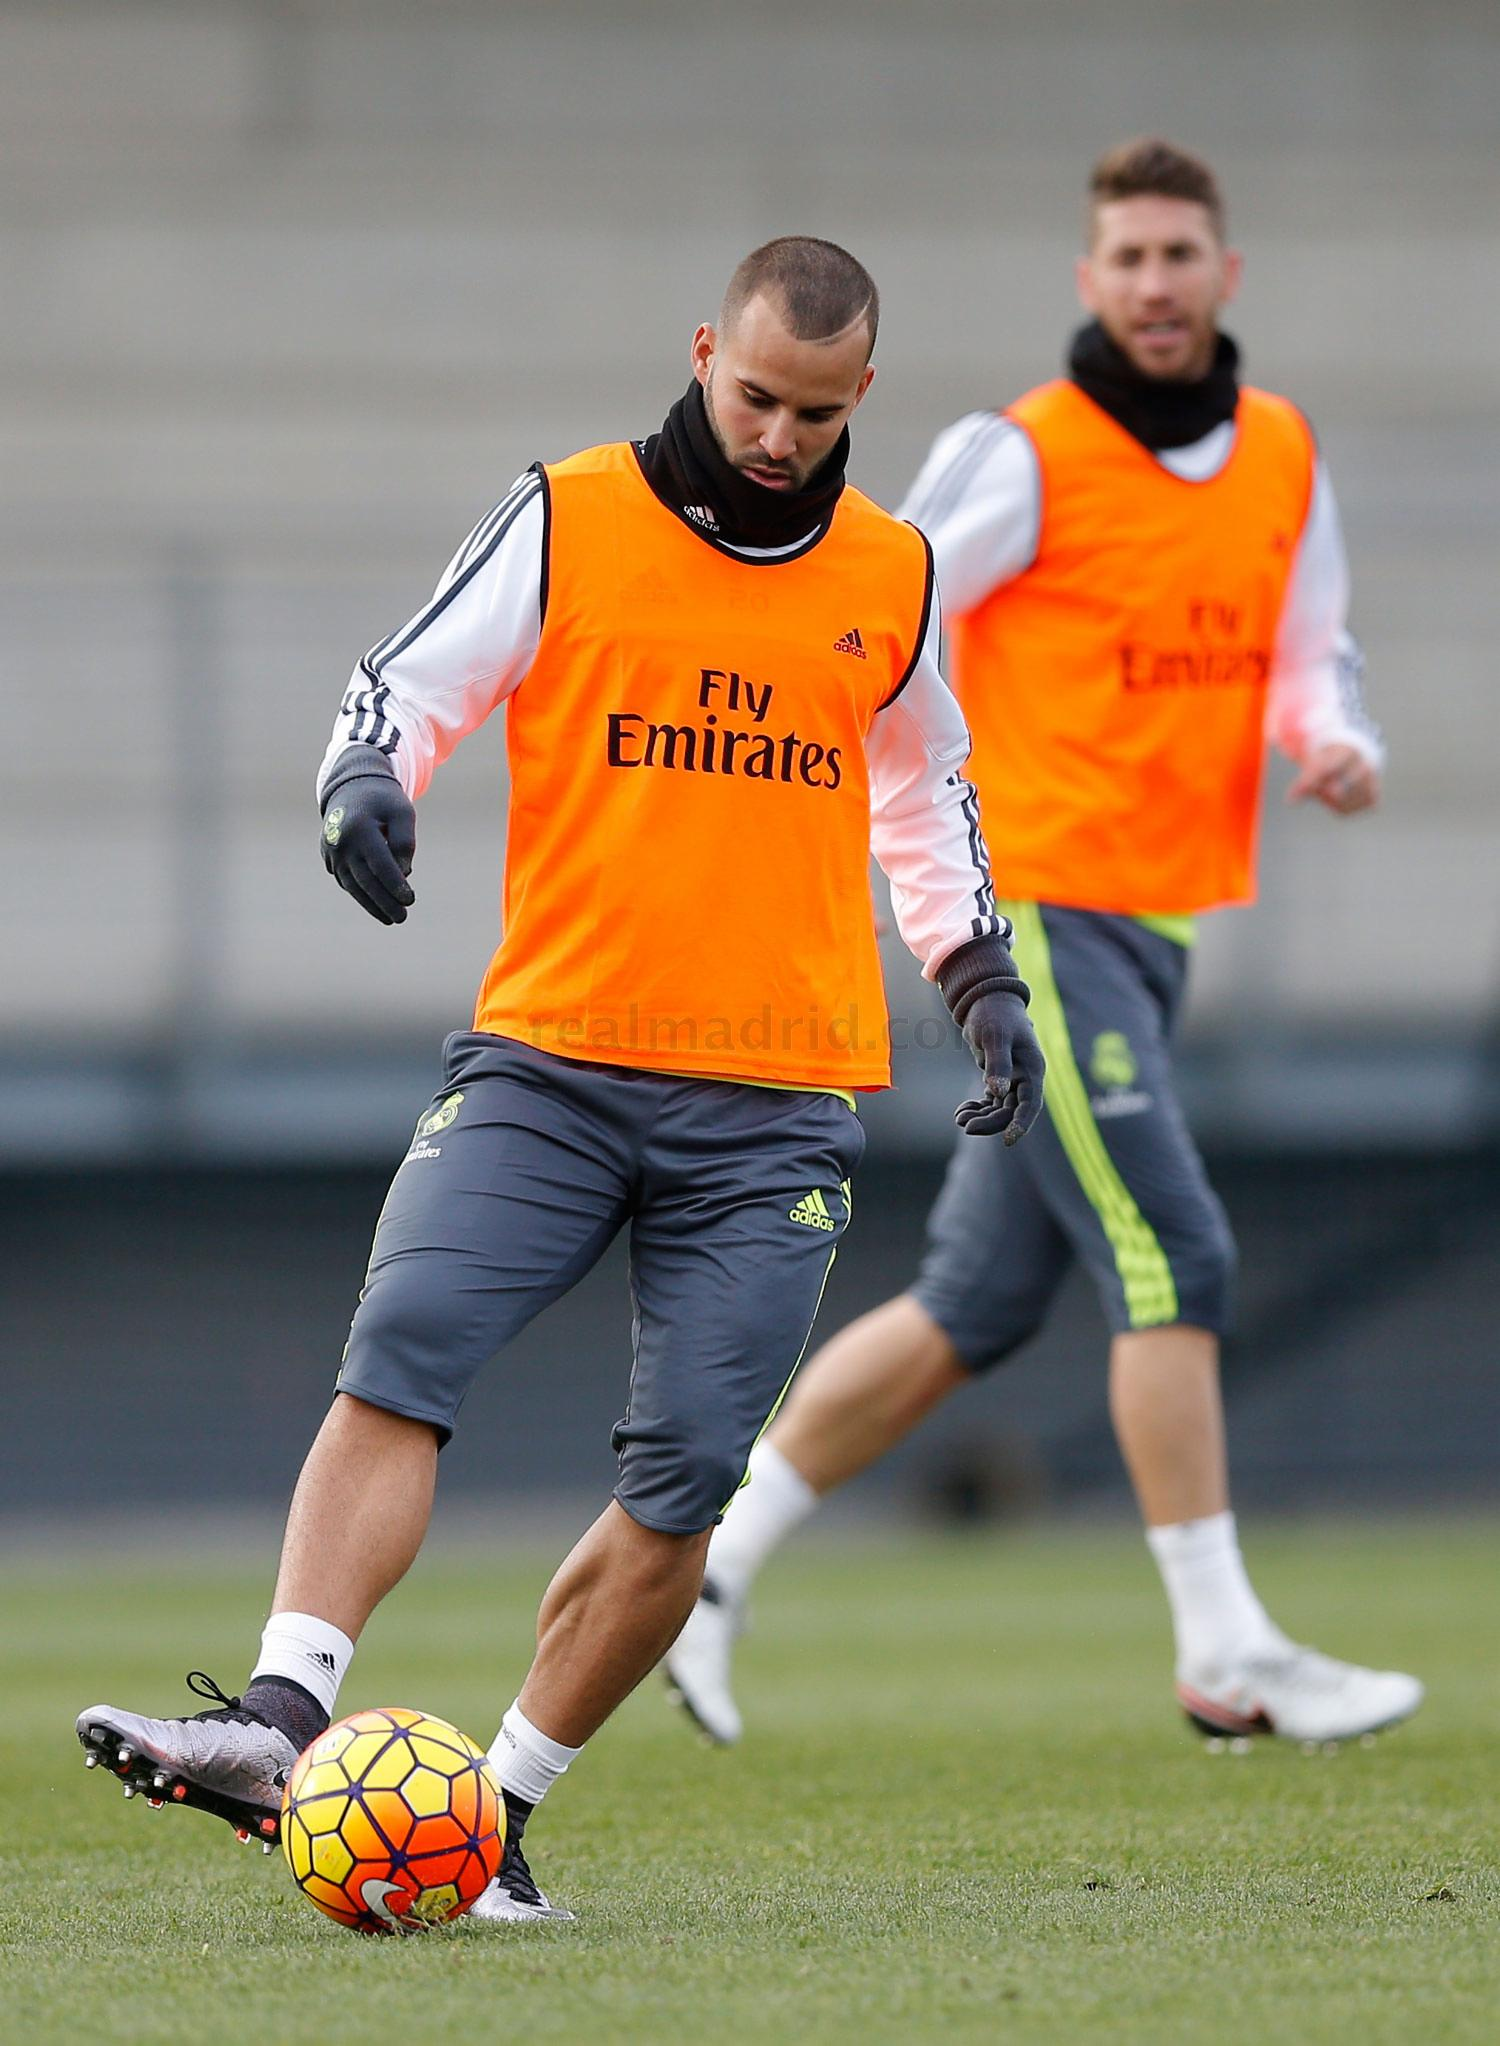 Real Madrid - Entrenamiento del Real Madrid - 12-12-2015